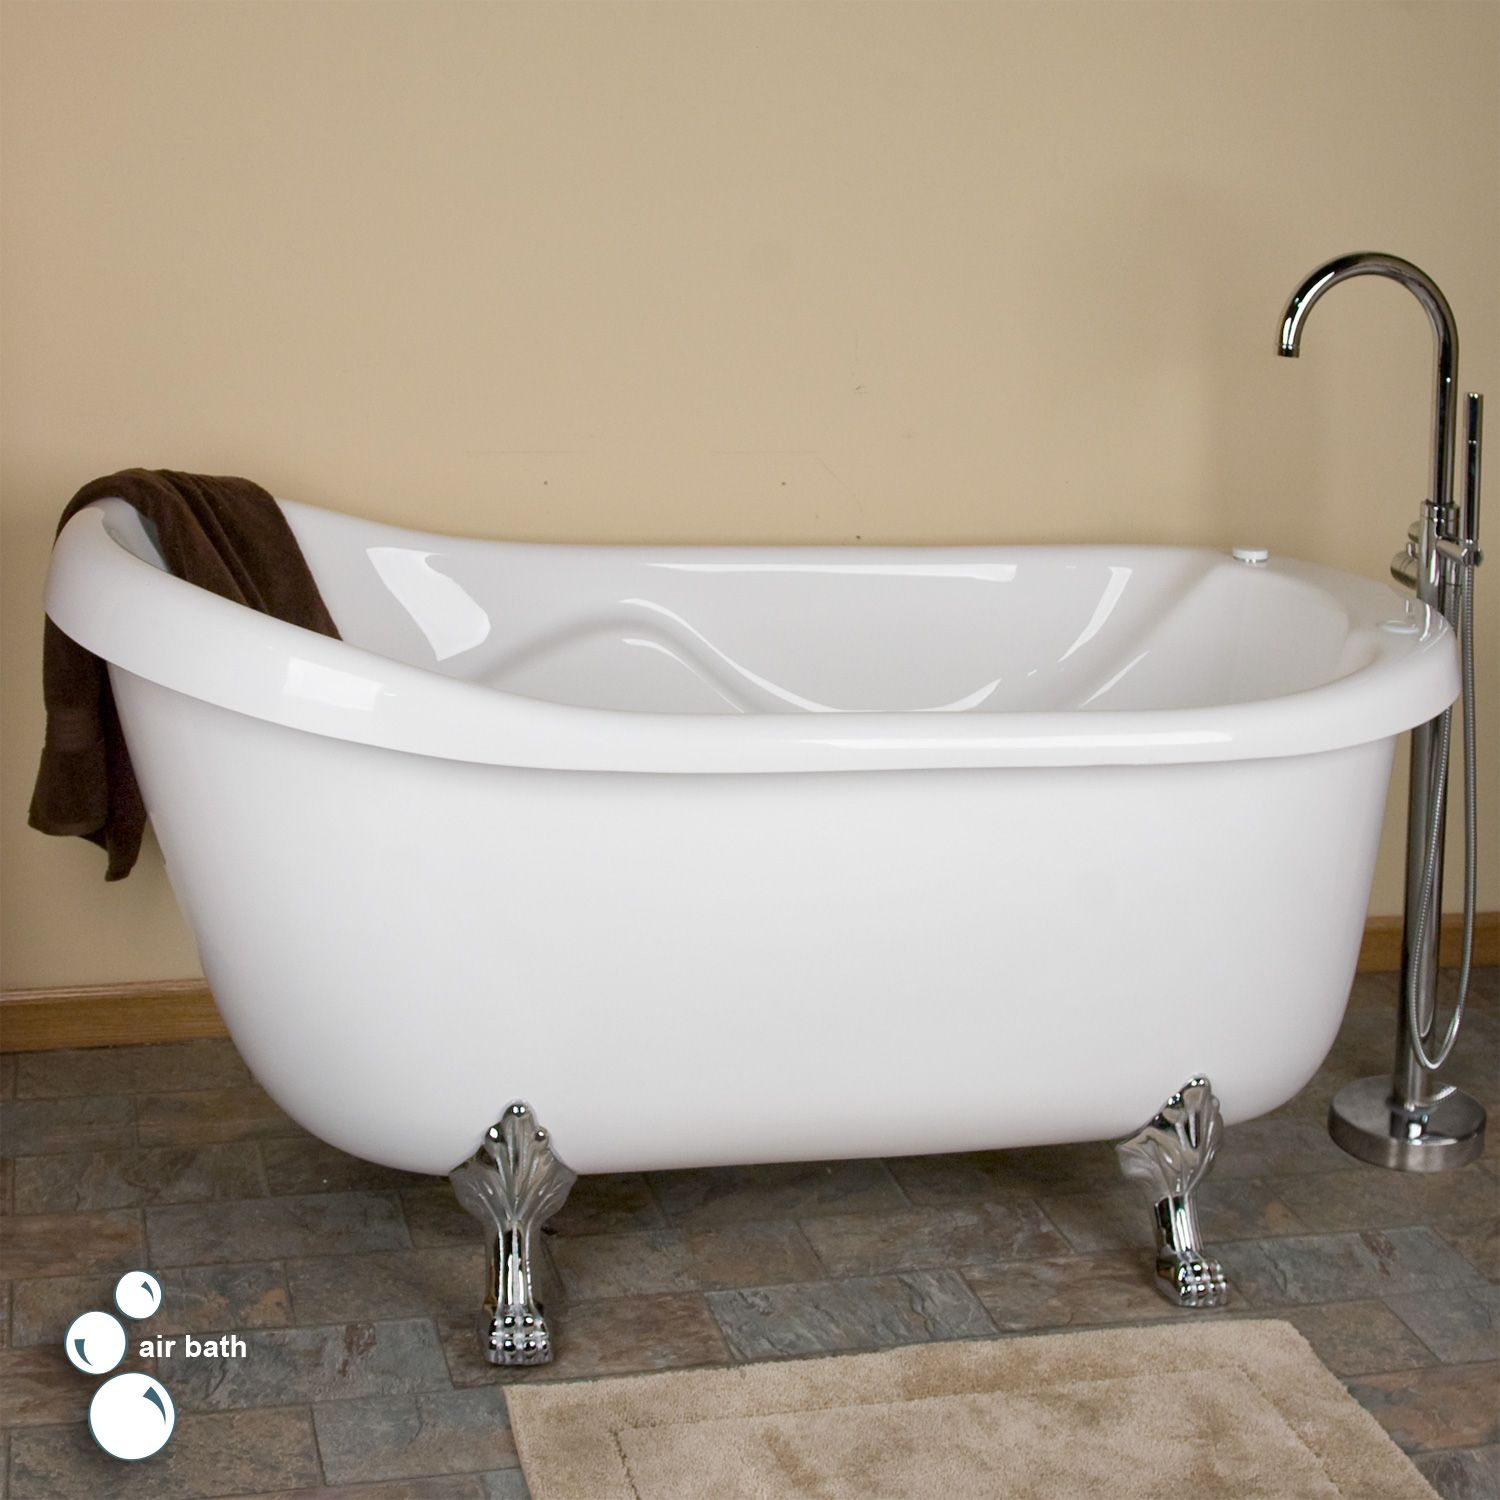 67 Anelle Acrylic Slipper Clawfoot Whirlpool Tub Bath